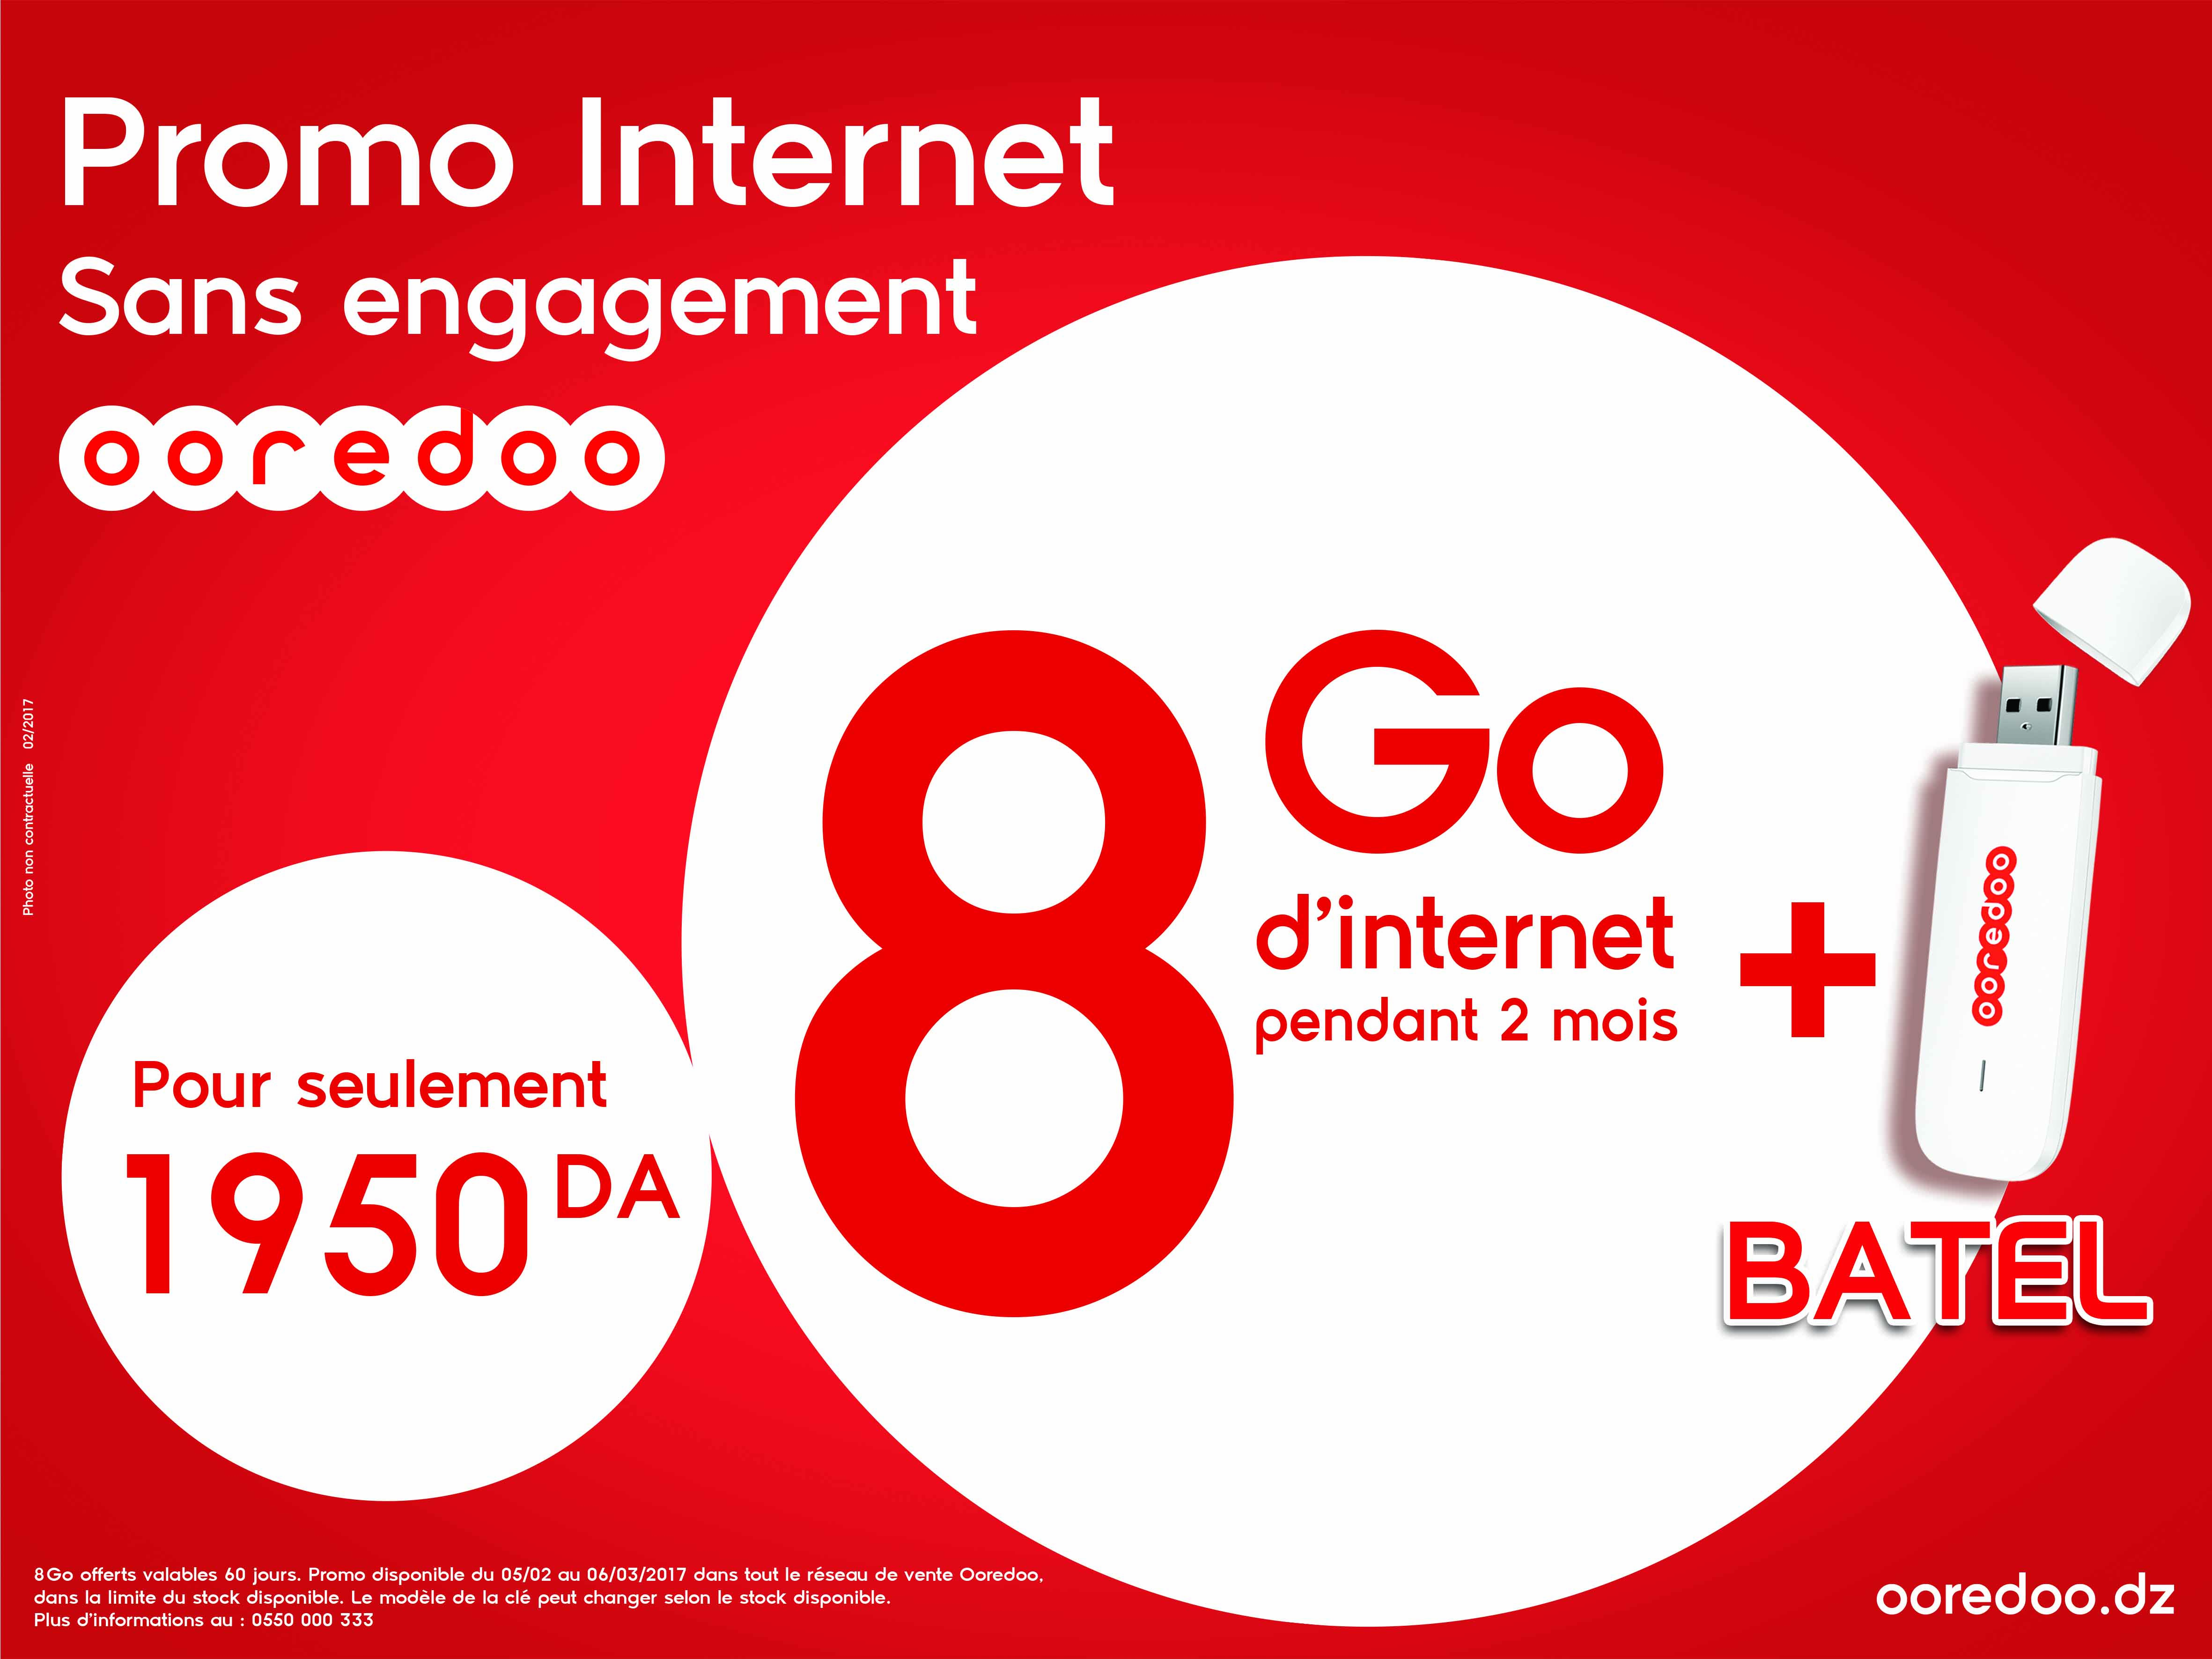 promo internet 8 go sans engagement de ooredoo avec 1950. Black Bedroom Furniture Sets. Home Design Ideas